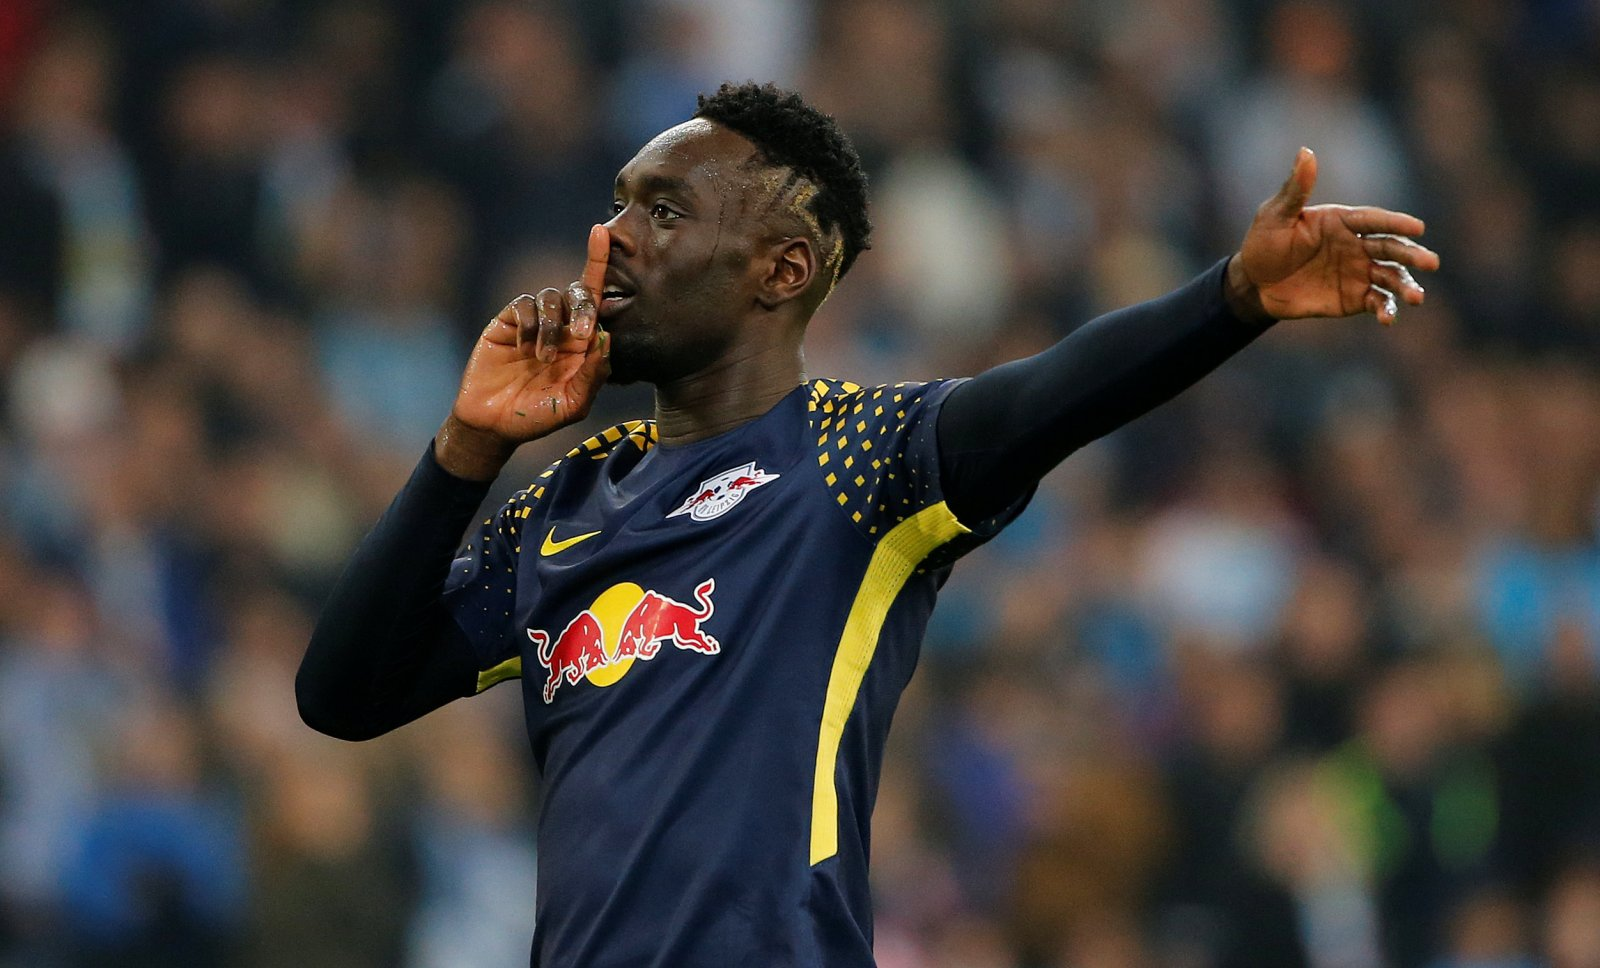 Jean-Kevin Augustin (Getty Images)